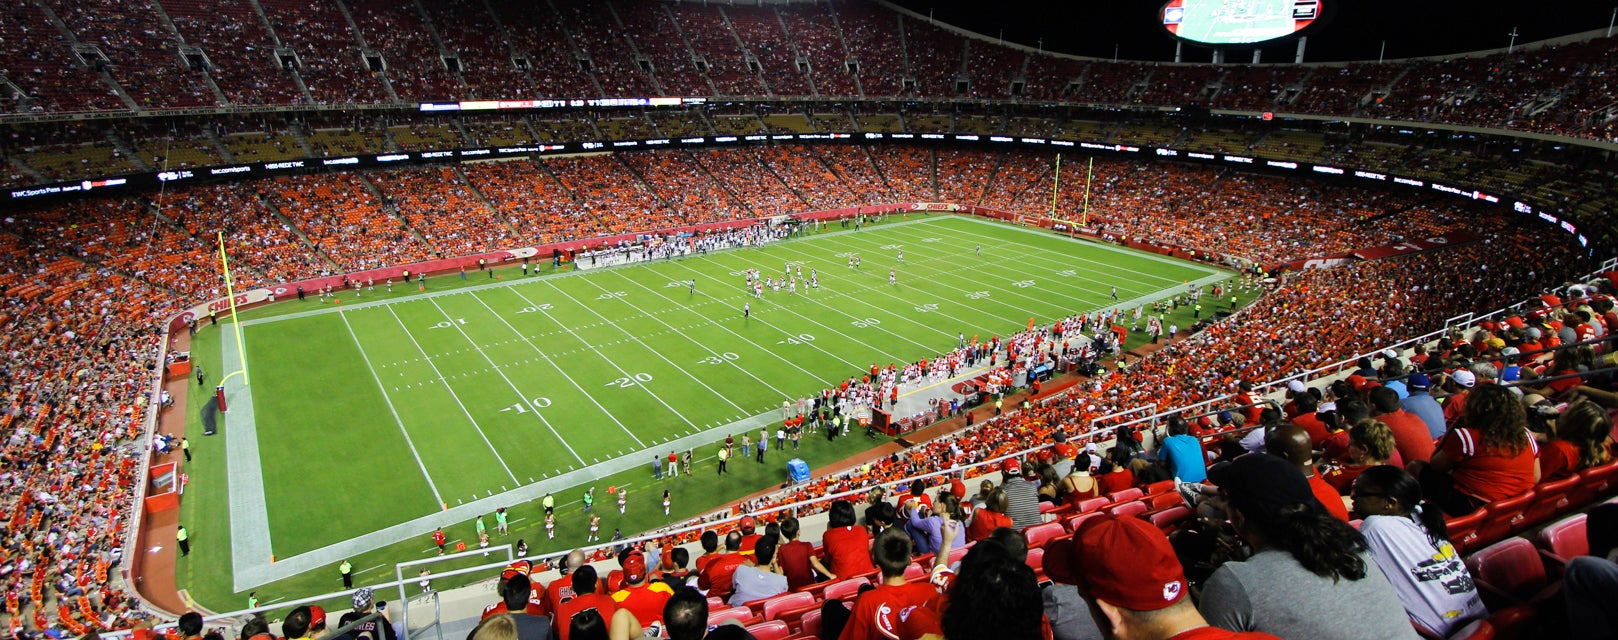 Seat view from Upper Red View